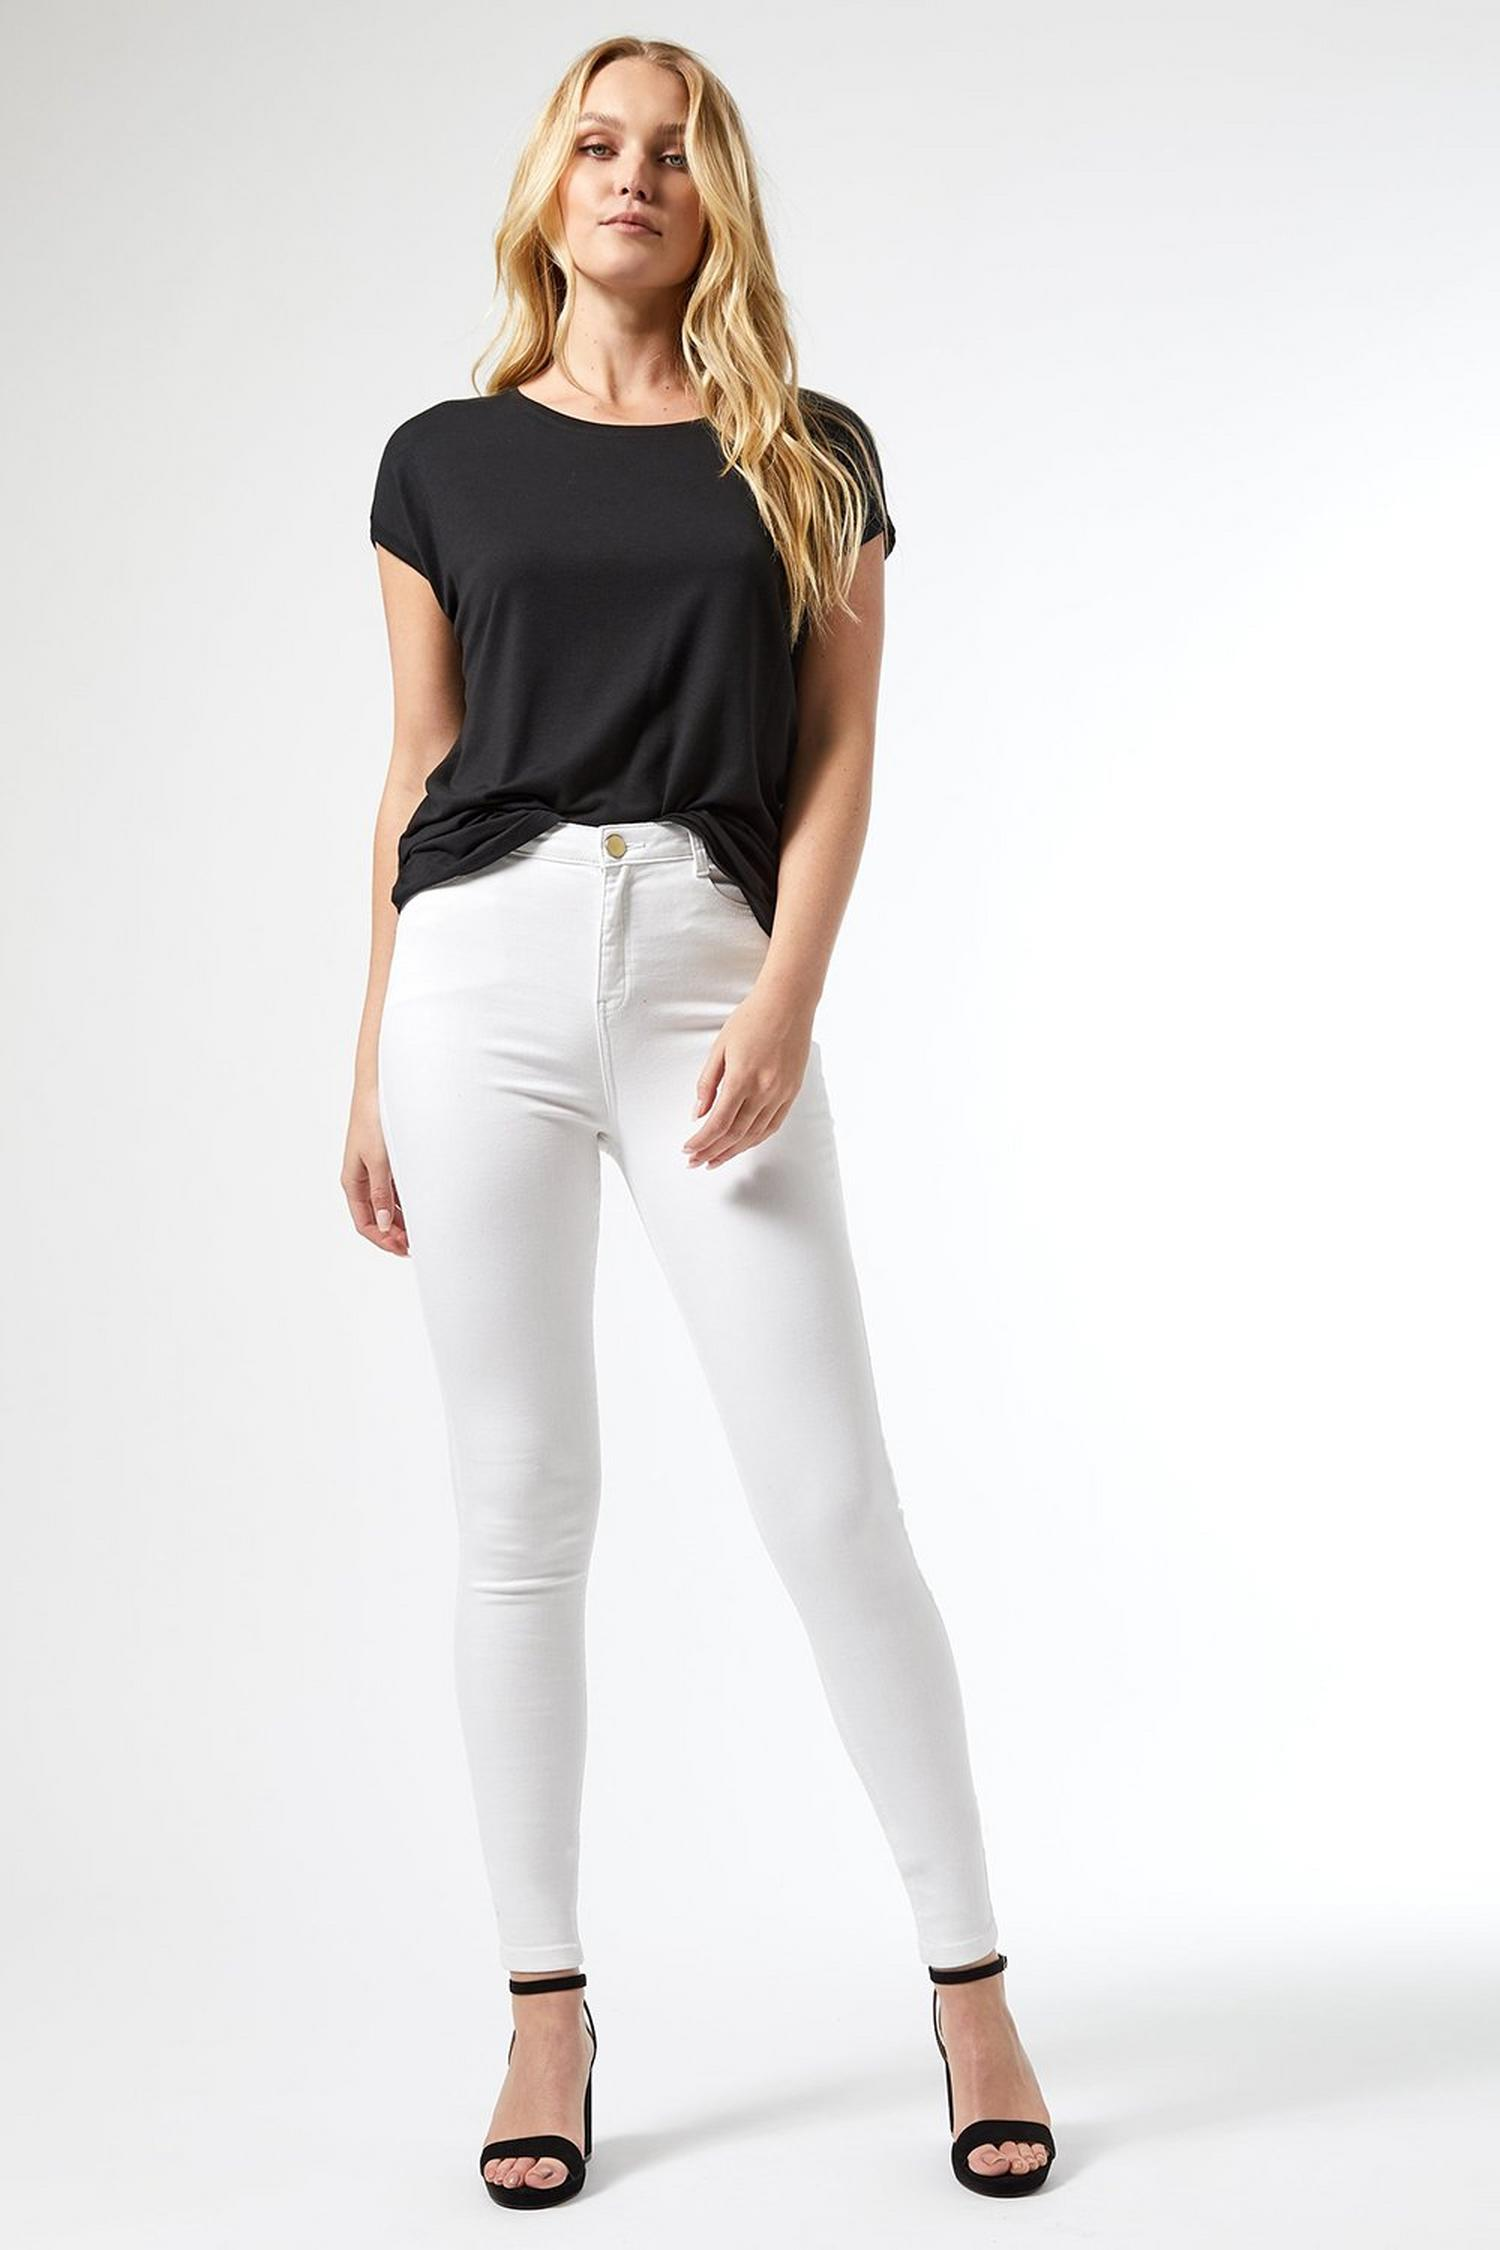 173 Tall White Shape and Lift Denim Jeans image number 1